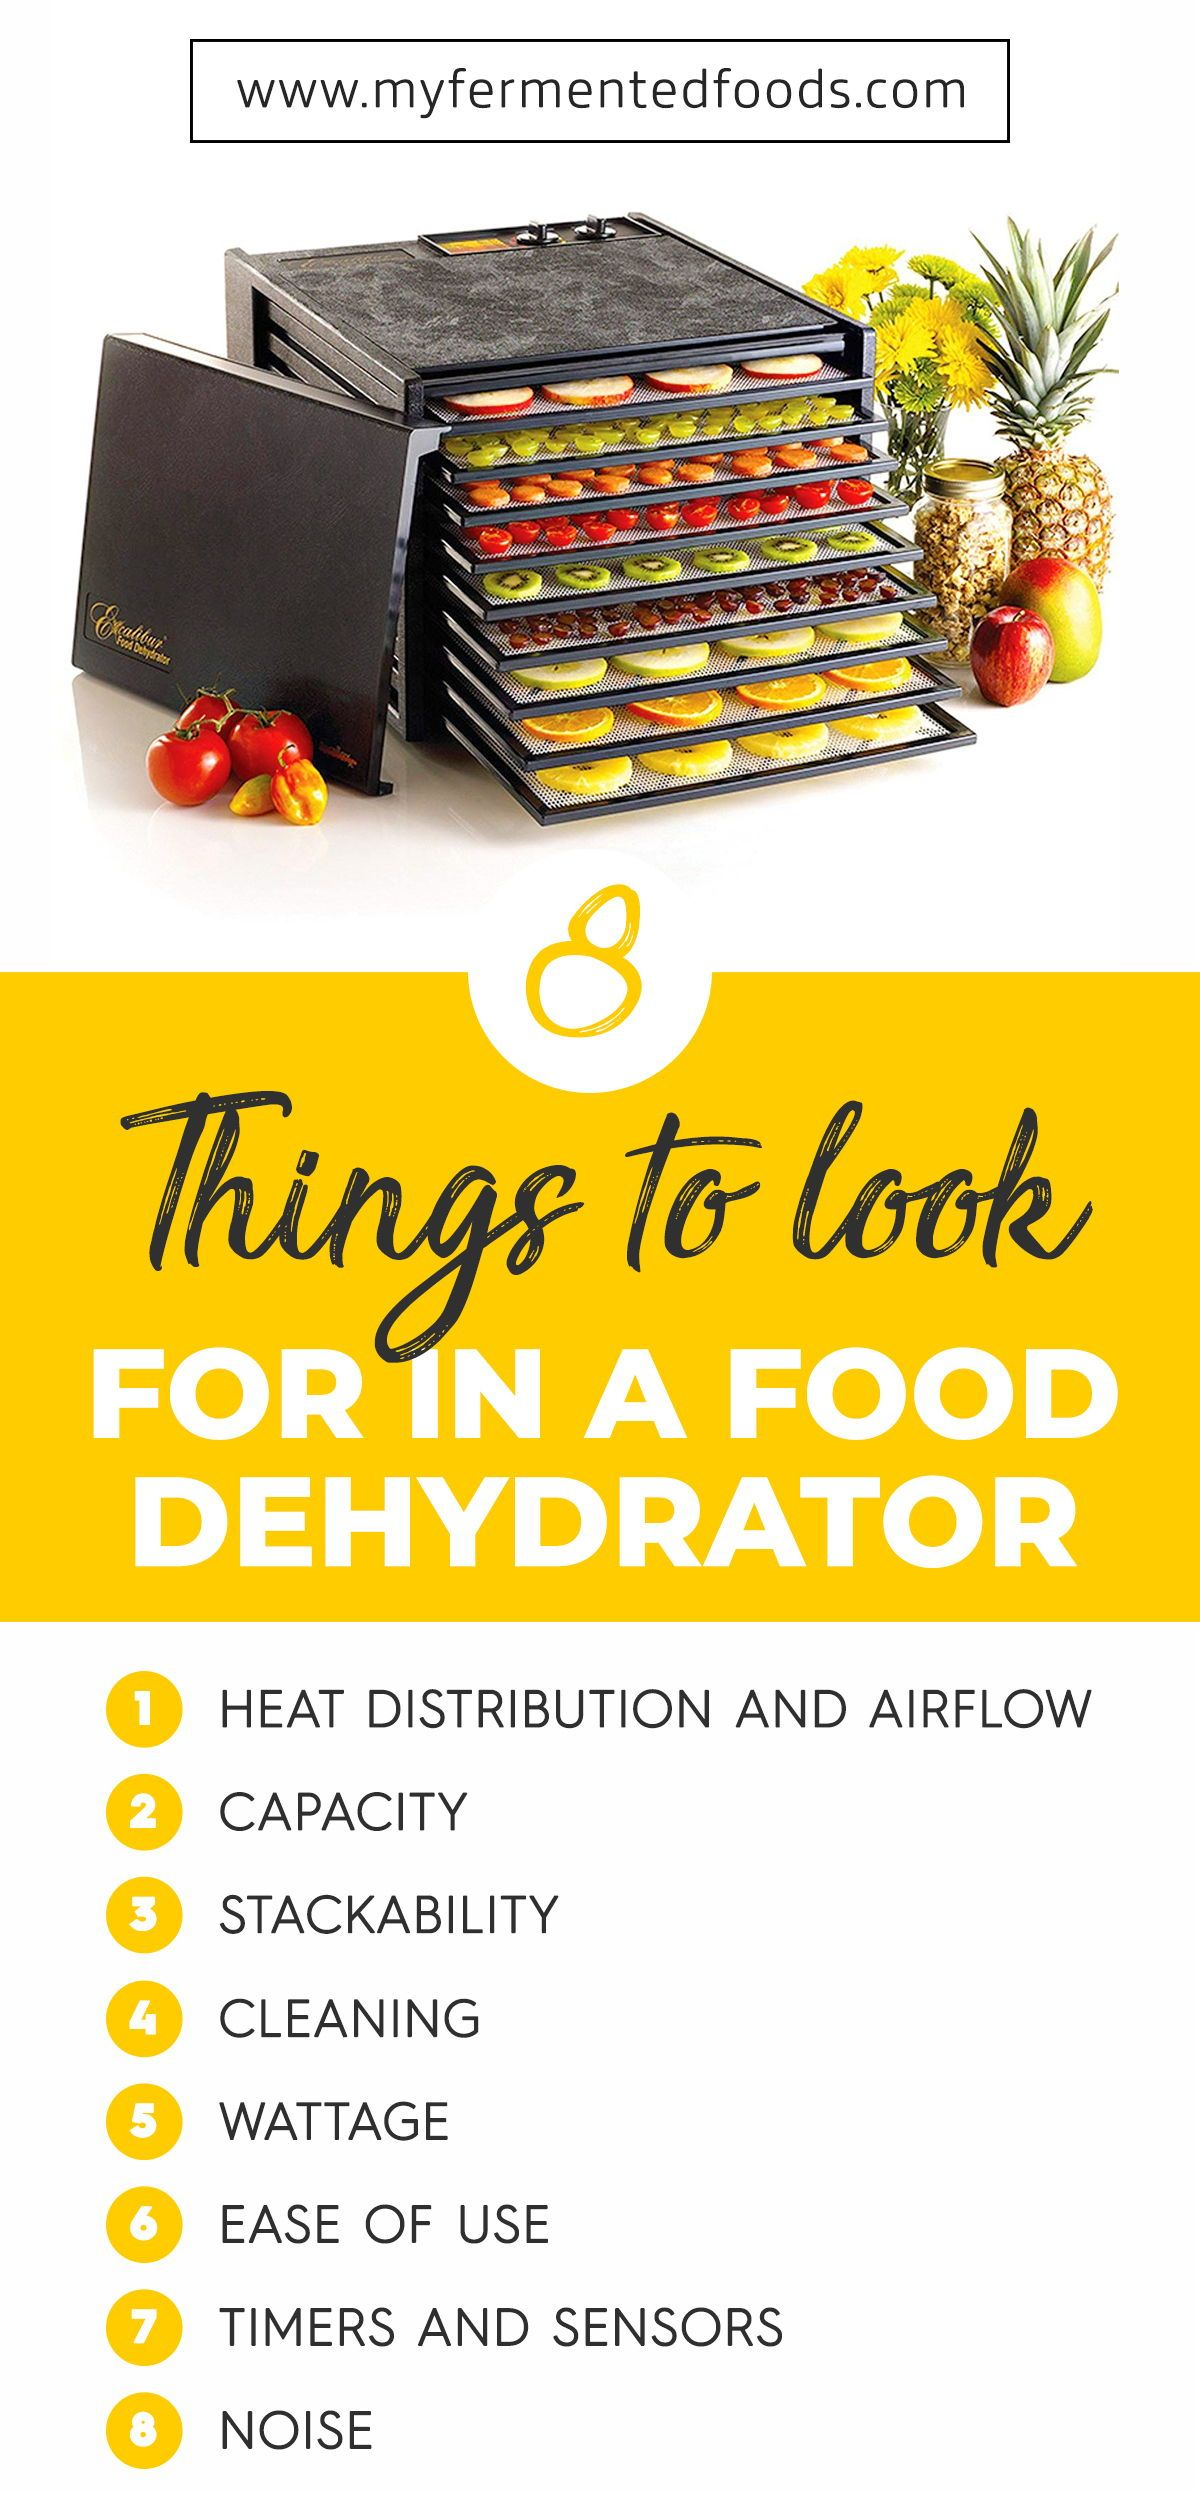 Learn what features to look for when choosing food